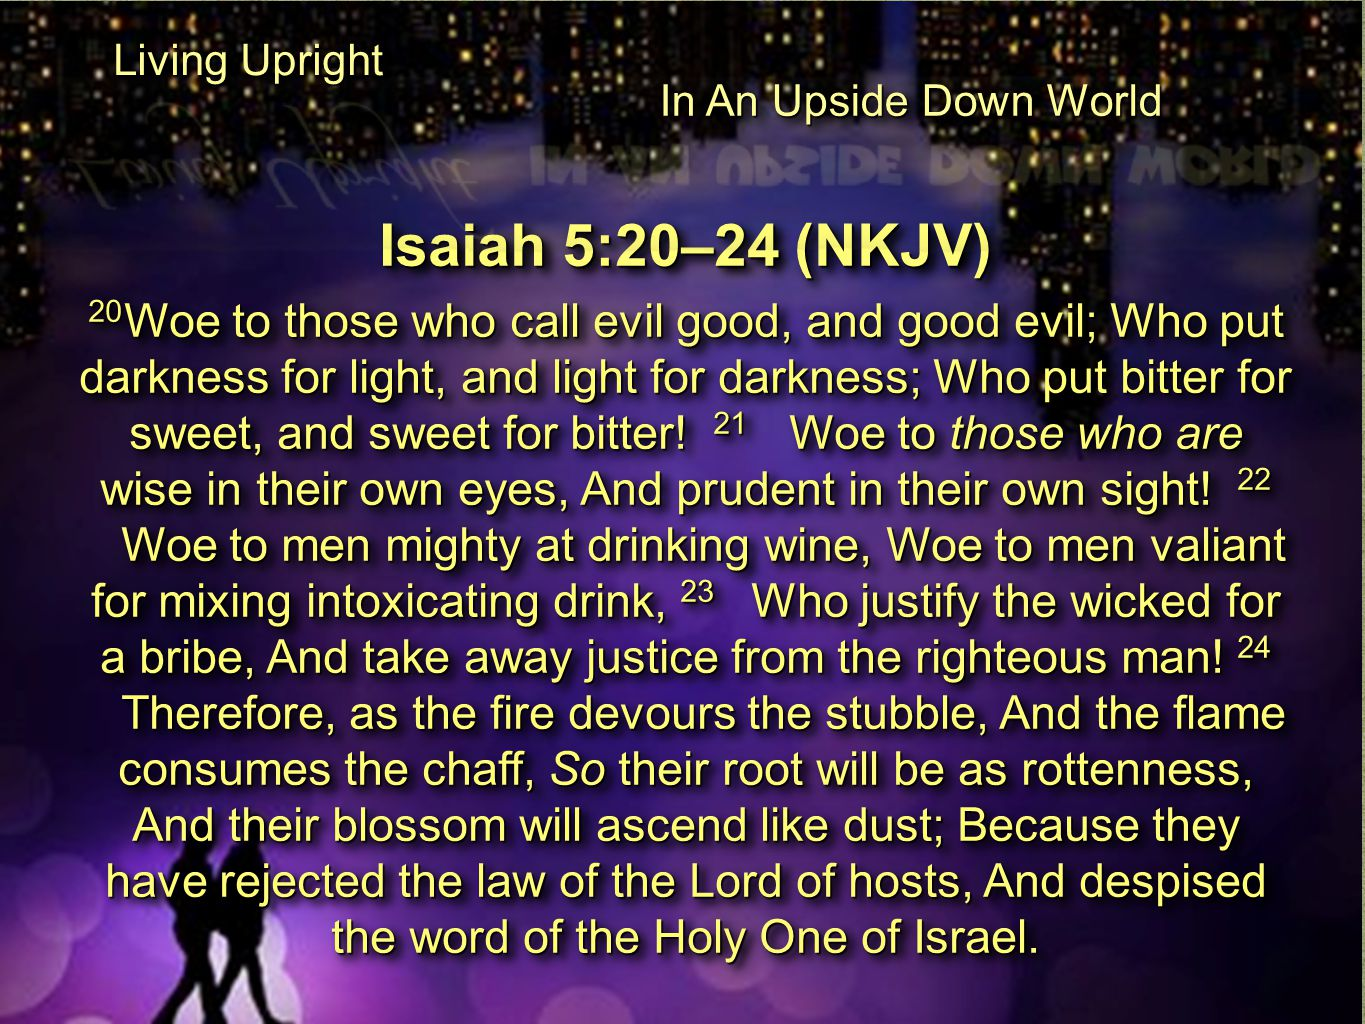 Isaiah 5:20–24 (NKJV) 20 Woe to those who call evil good, and good evil; Who put darkness for light, and light for darkness; Who put bitter for sweet,